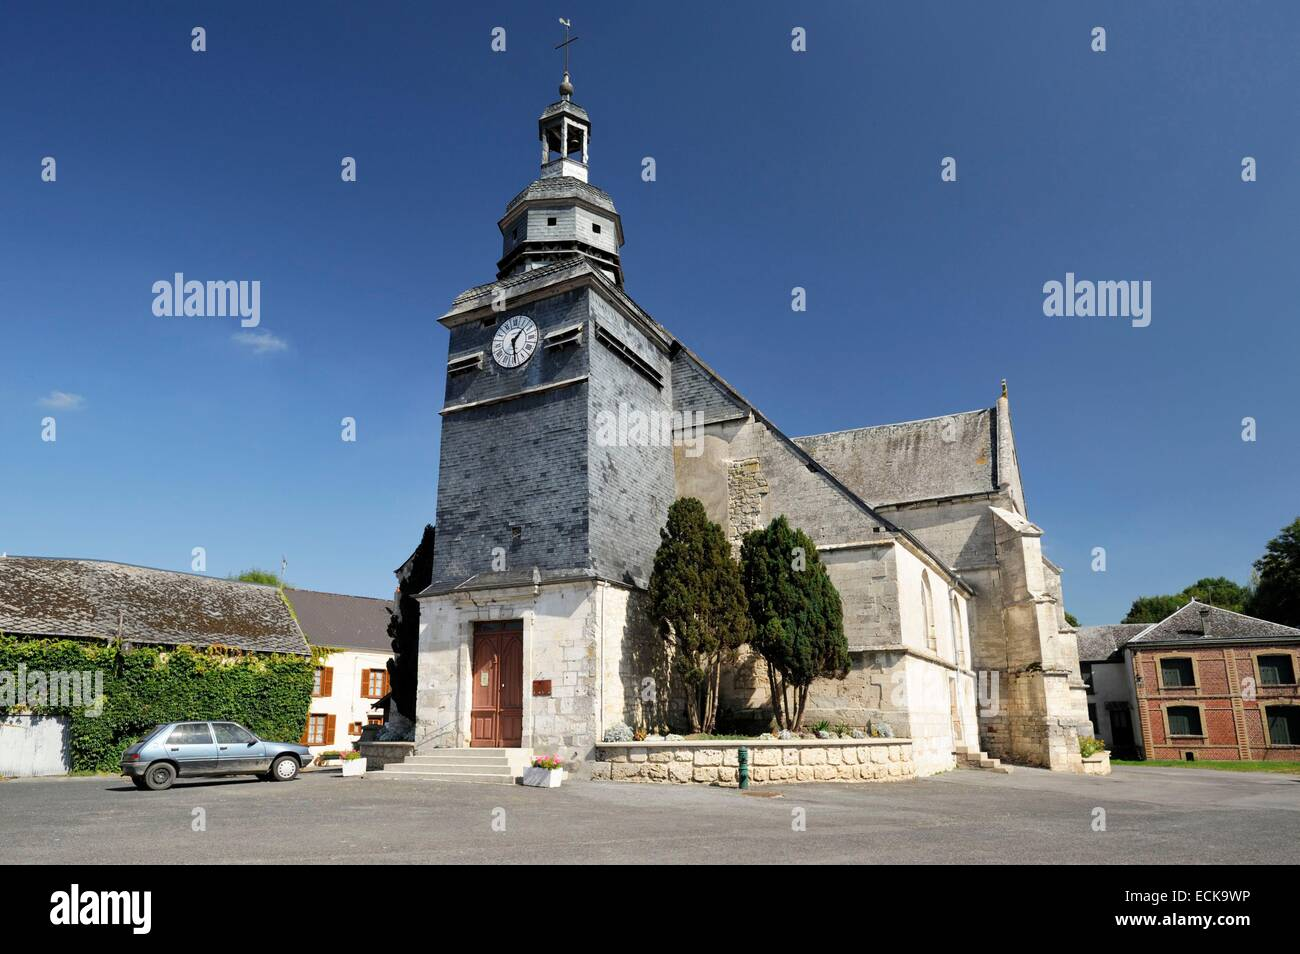 France, Ardennes, Wasigny, Saint Remi church and its square - Stock Image